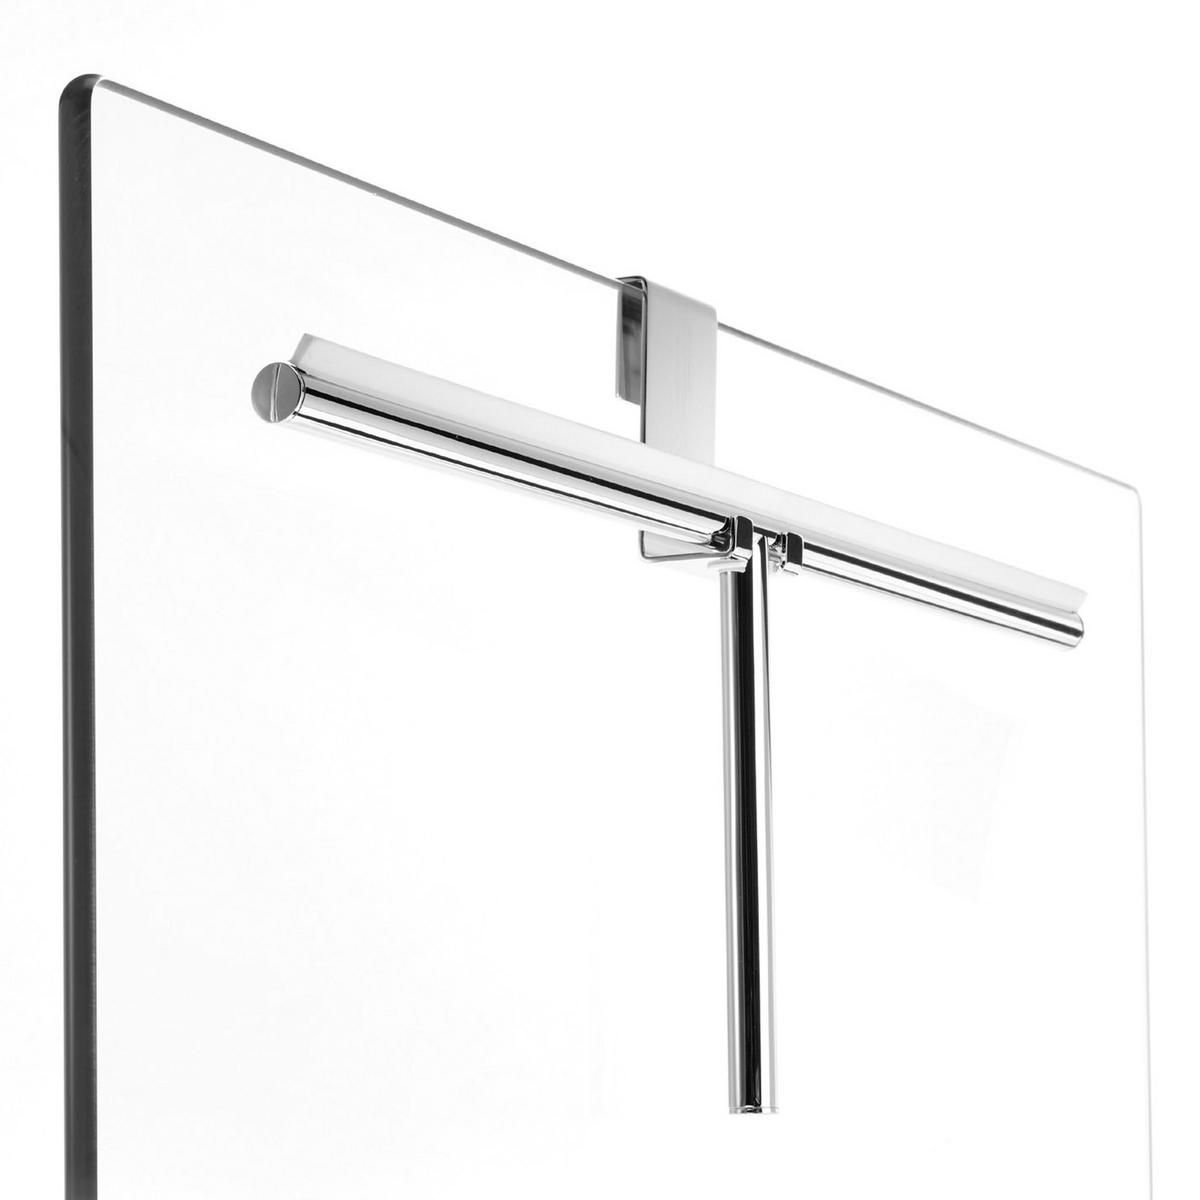 Decor Walther Easy bathroom wiper | Artedona.com